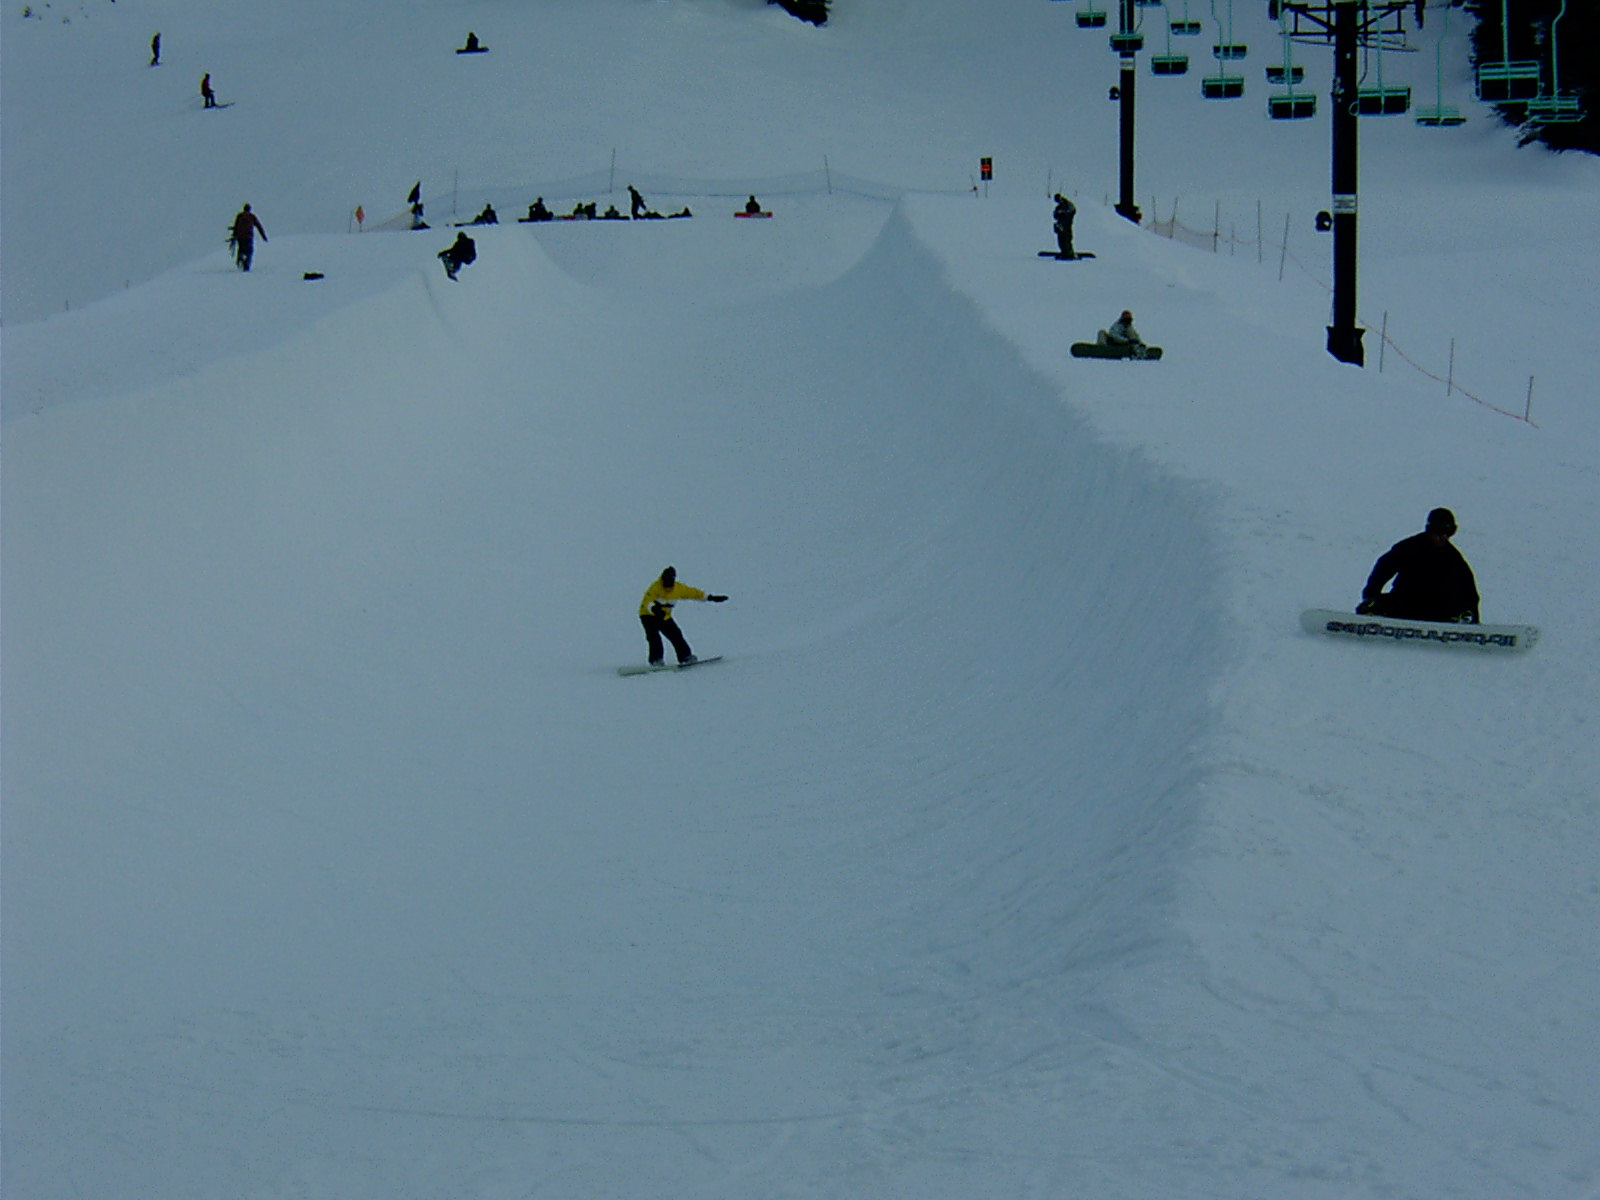 James in the Pipe, Stevens Pass